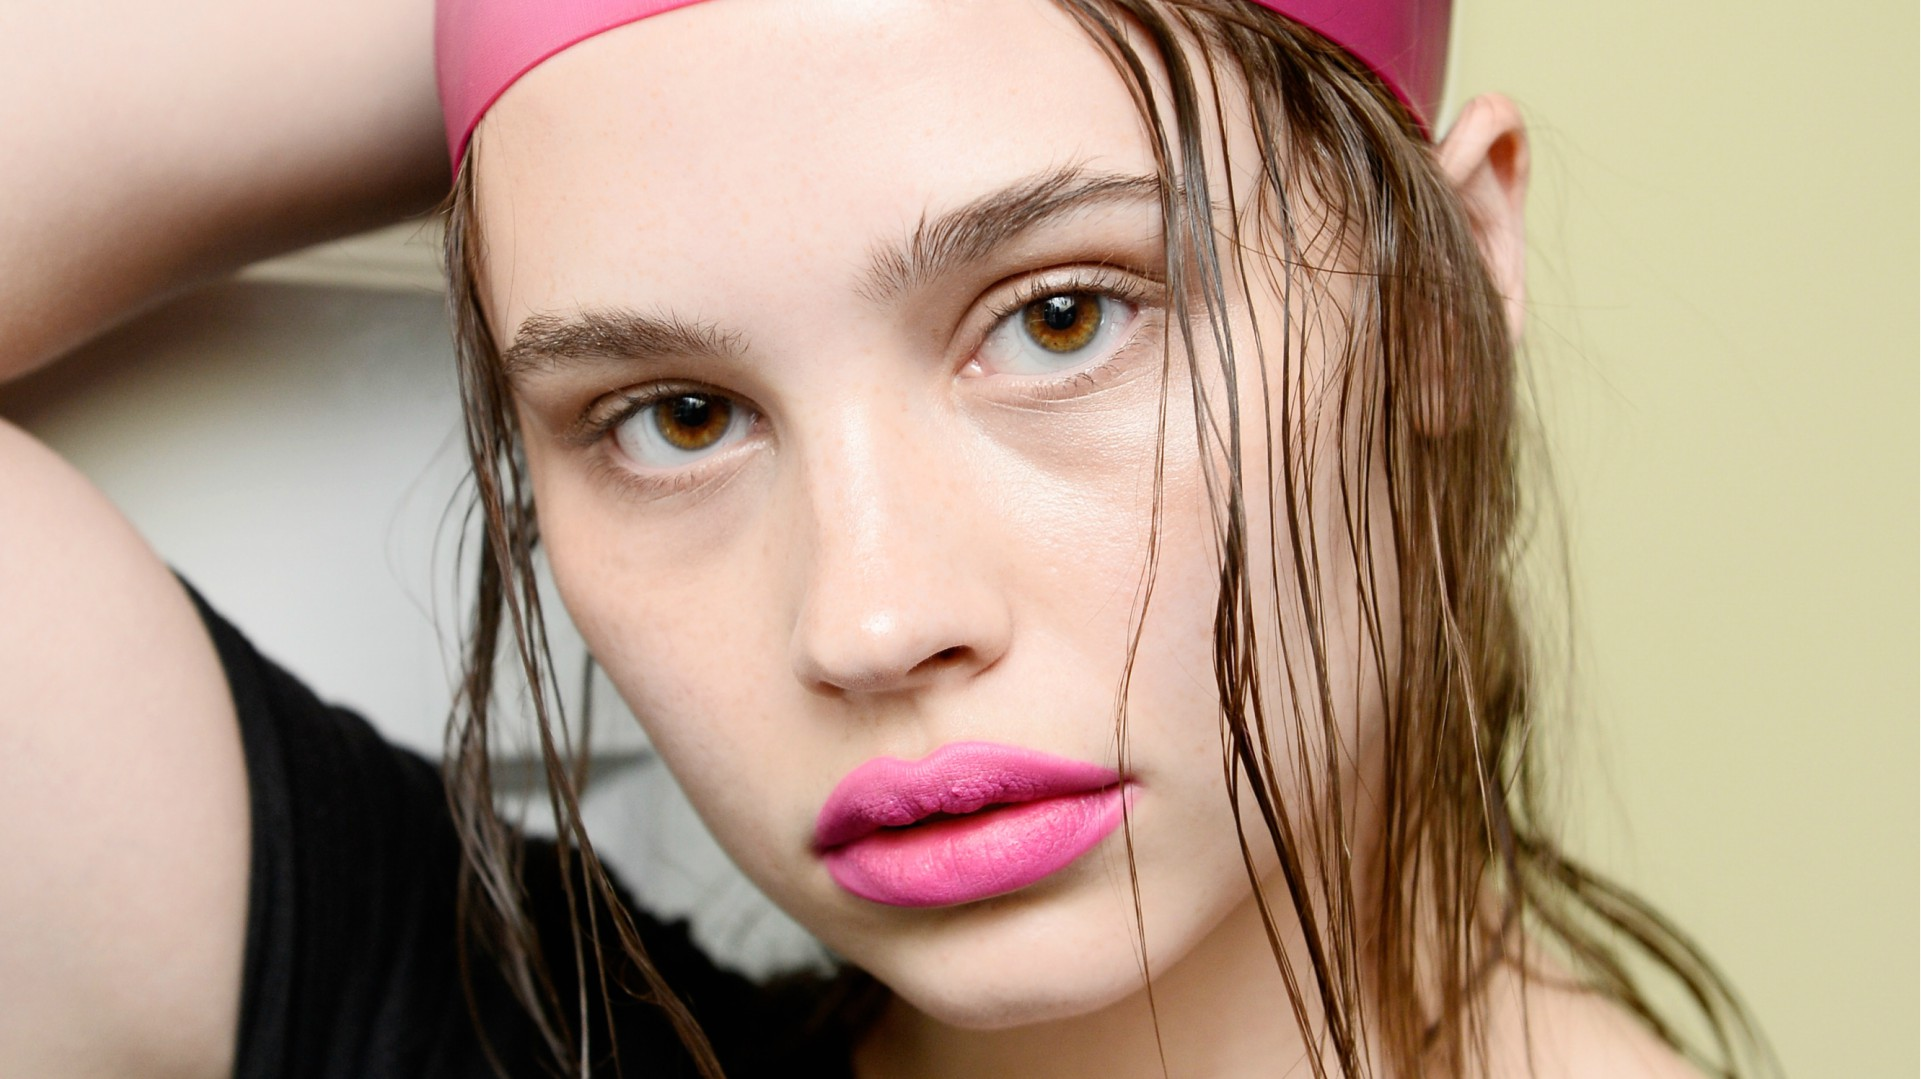 10 Stellar Cleansers to Try If You Struggle With Acne